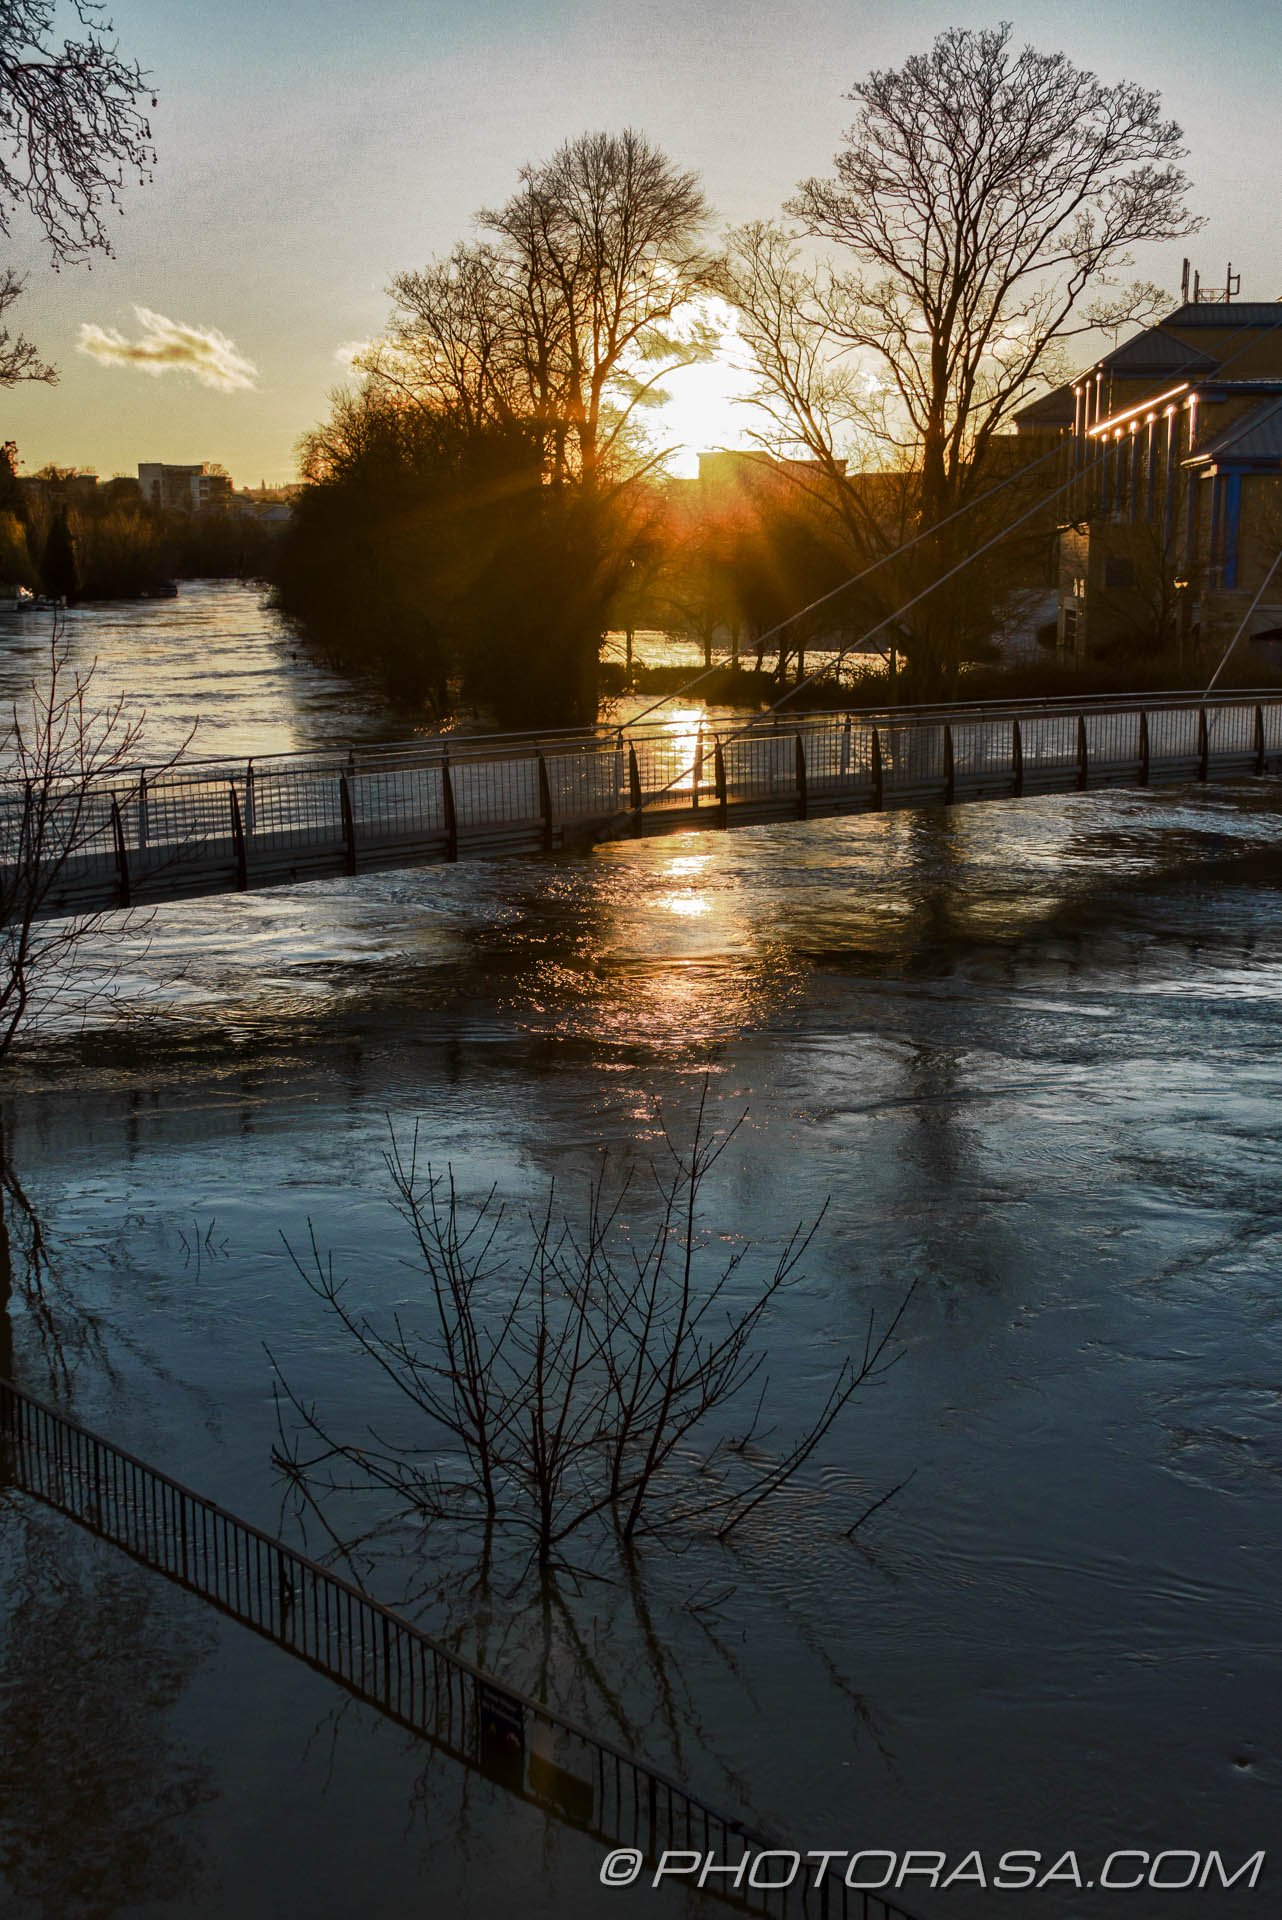 http://photorasa.com/wet-xmas-maidstone-river-medway-floods-town-centre/sunset-at-footbridge/